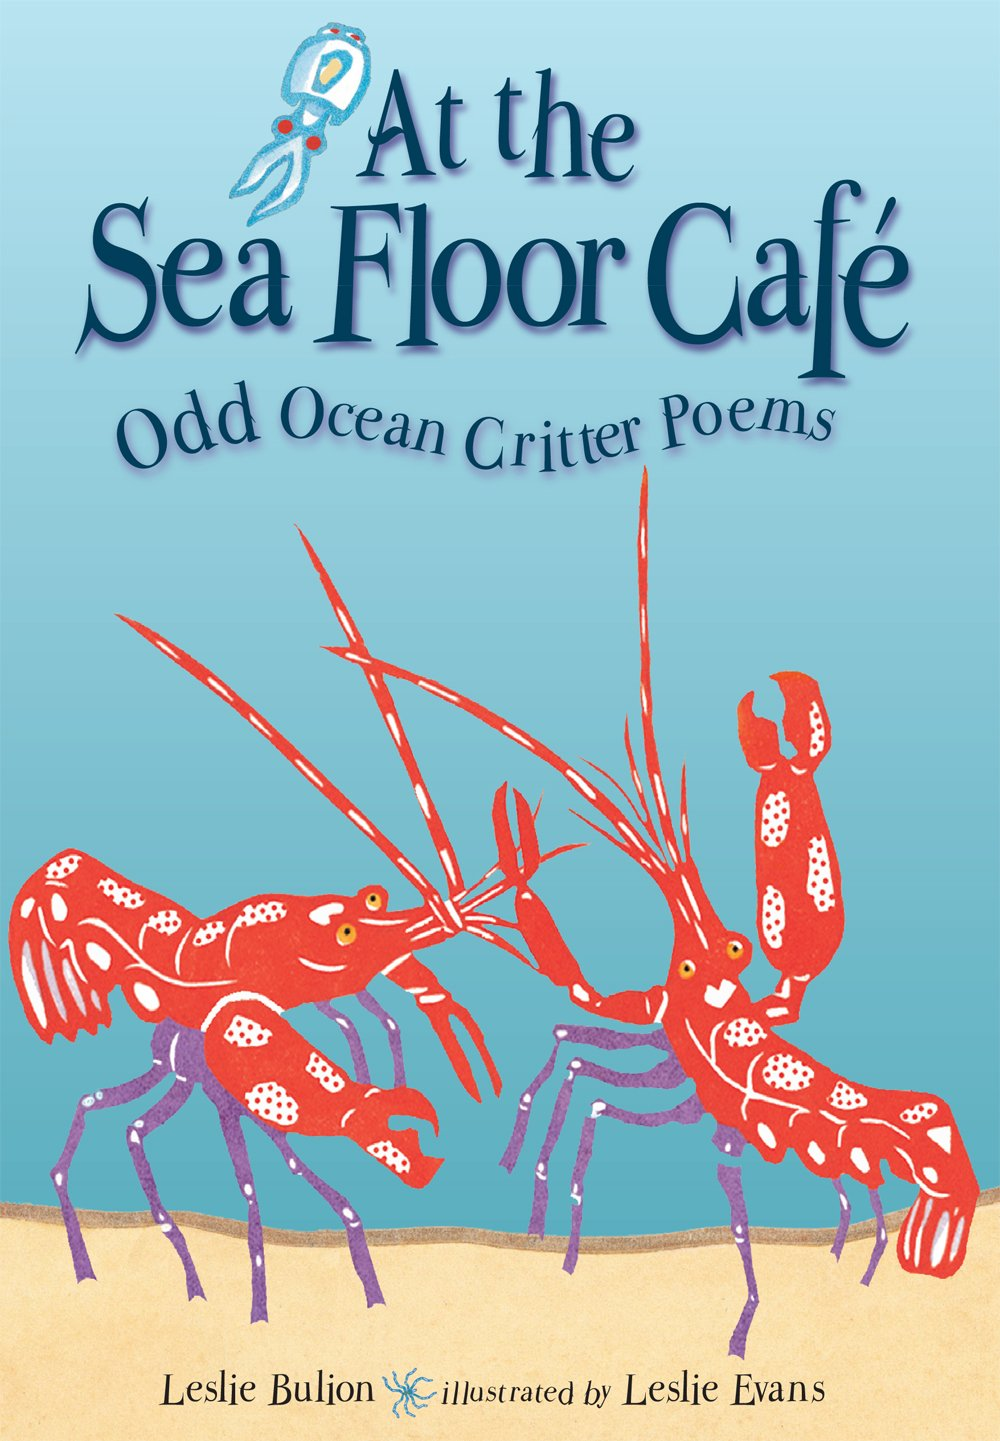 At the Sea Floor Cafe: Odd Ocean Critter Poems pdf